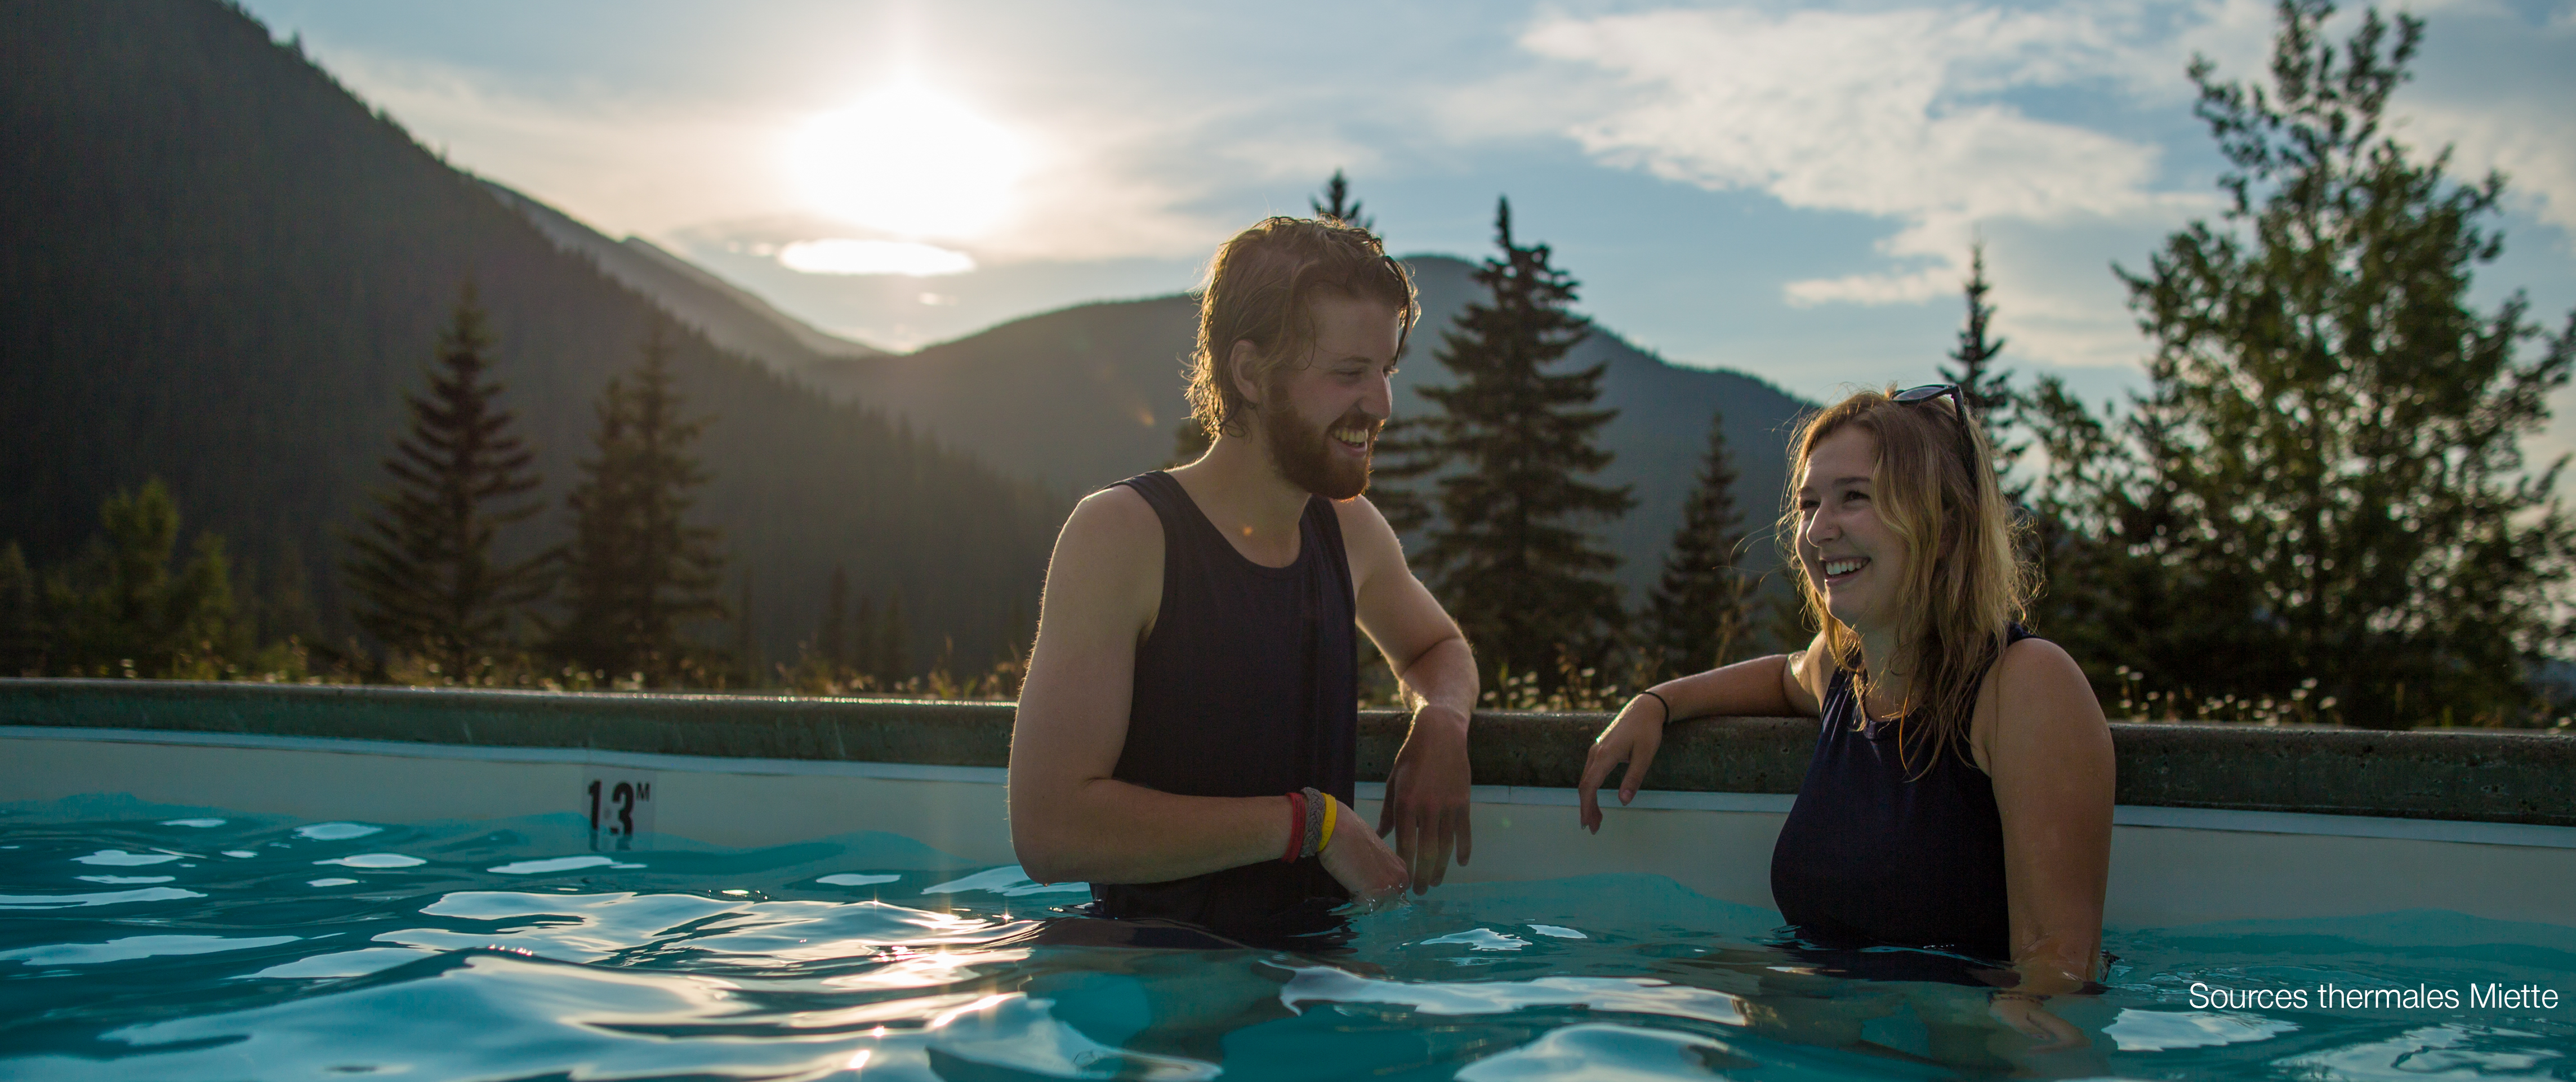 CRHS-Evening Hotsprings couple-Parks Canada-Olivia Robinson FRb